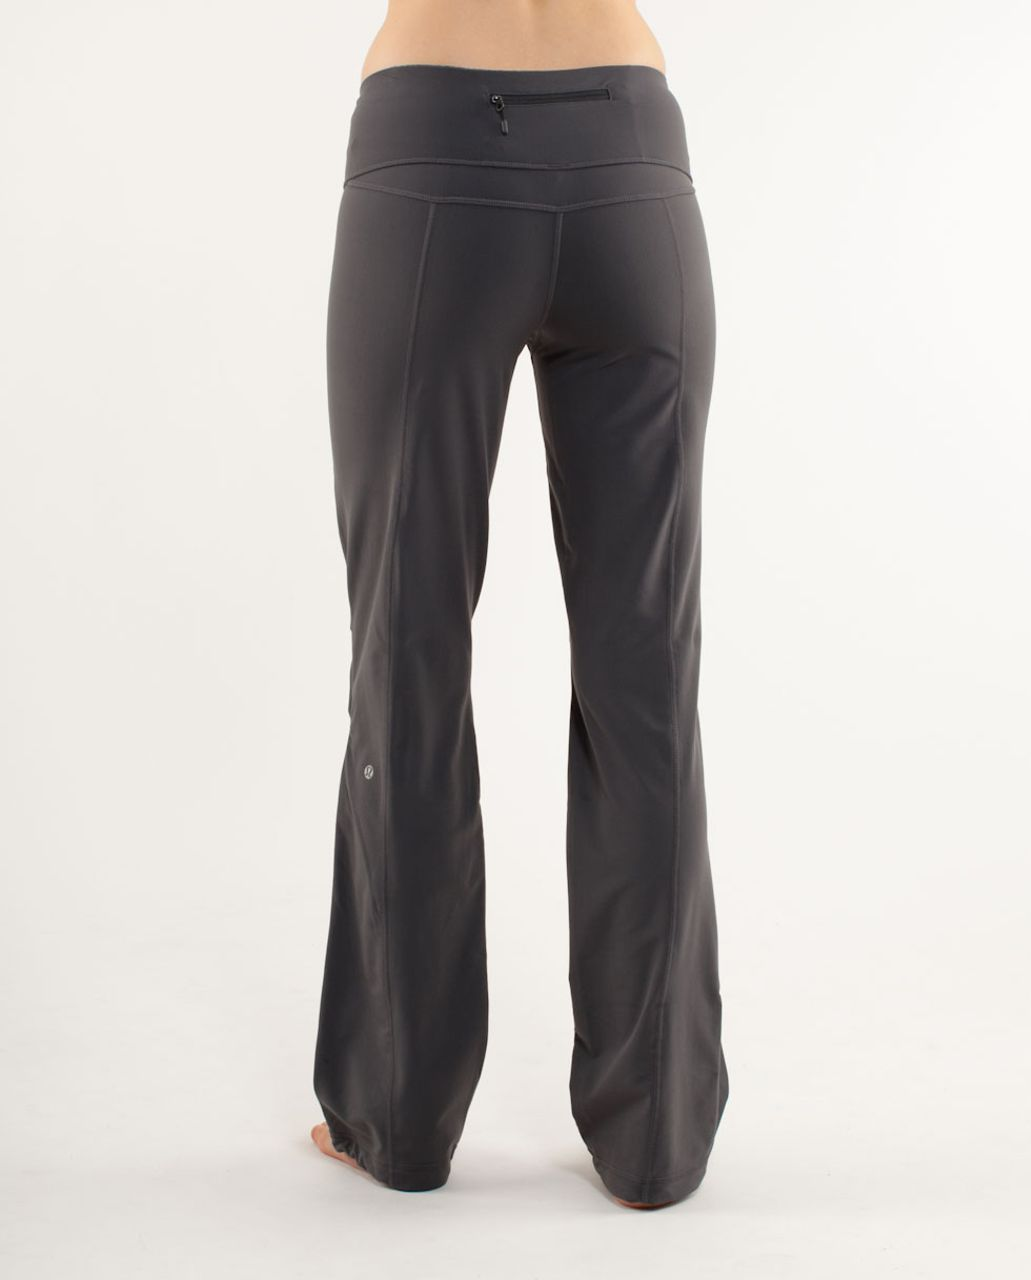 Lululemon Run:  Free Pant - Coal /  Heathered Coal